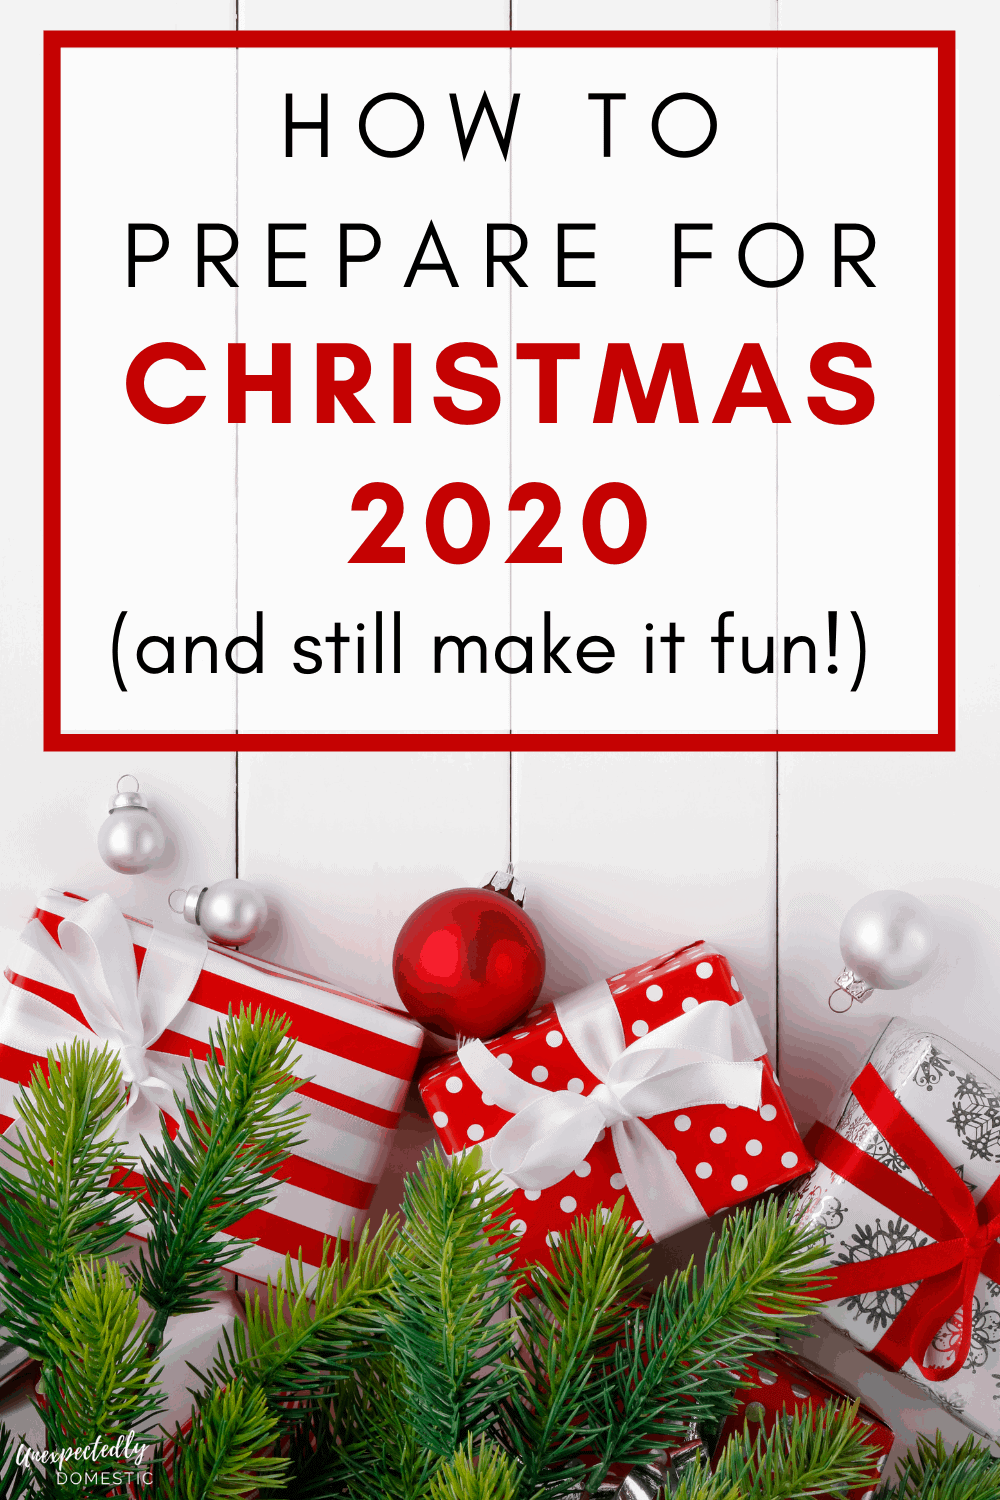 How to plan for Christmas 2020. Tips for getting prepared for the holiday season during a pandemic.